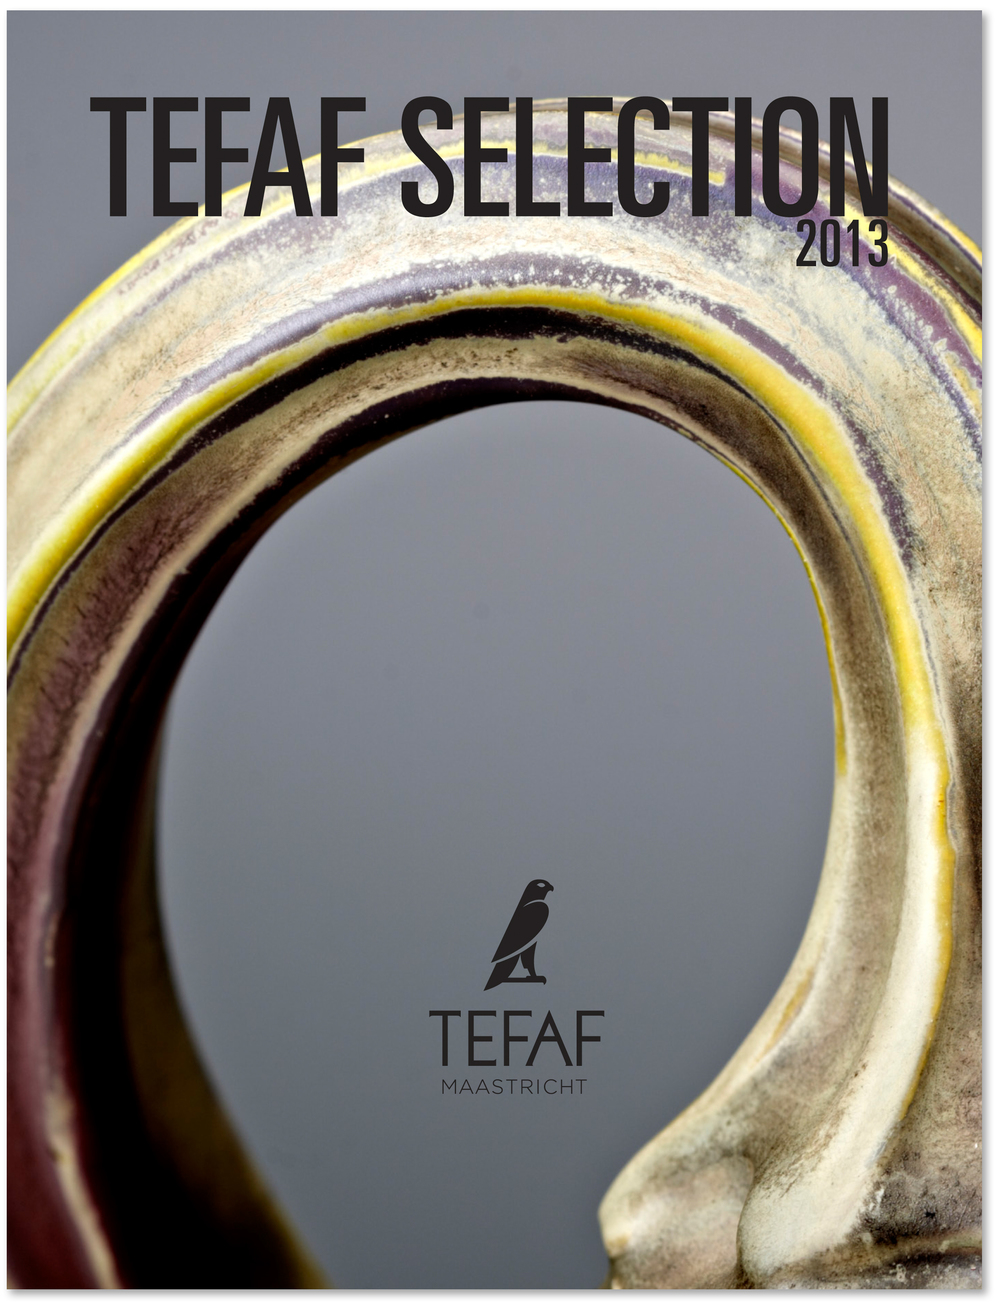 TEFAF Selection Catalog design